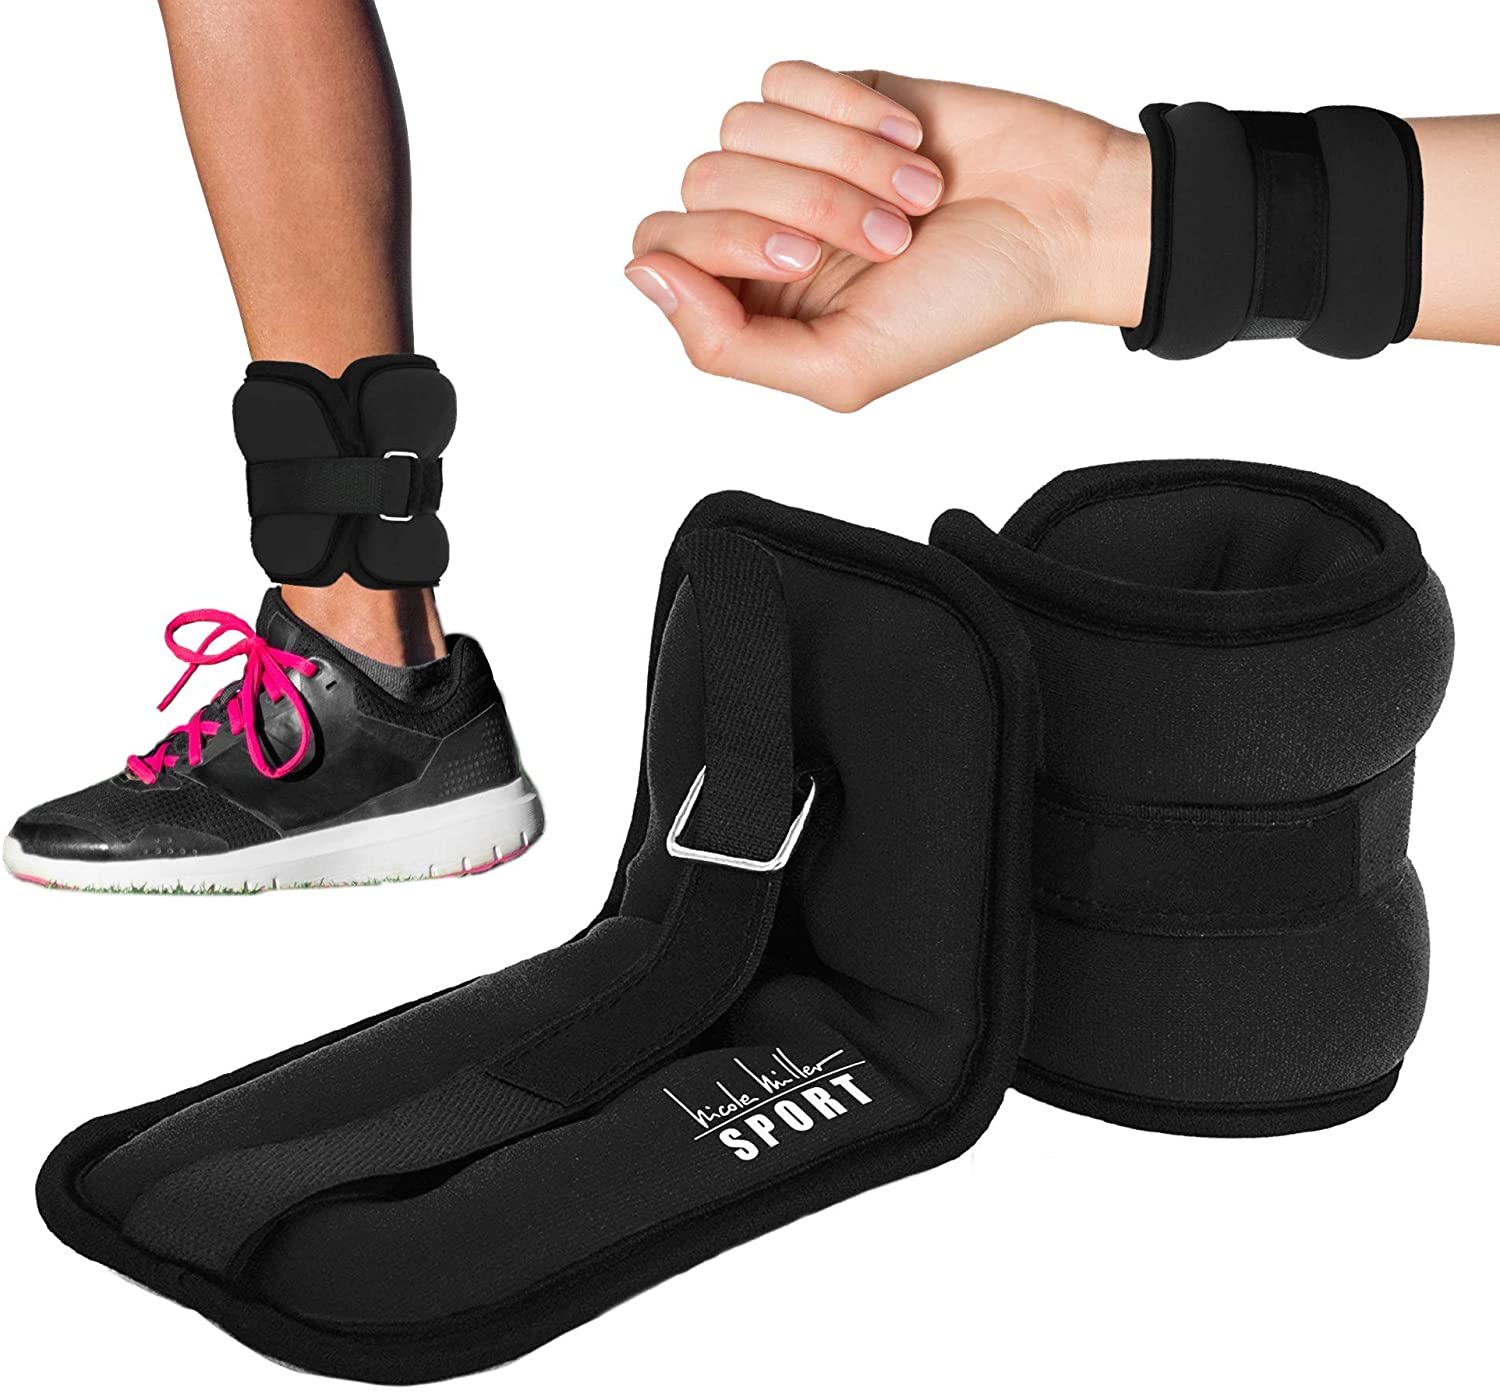 Ankle Weights Resistance Strength Training Exercise Wrist Straps Cardio Workout